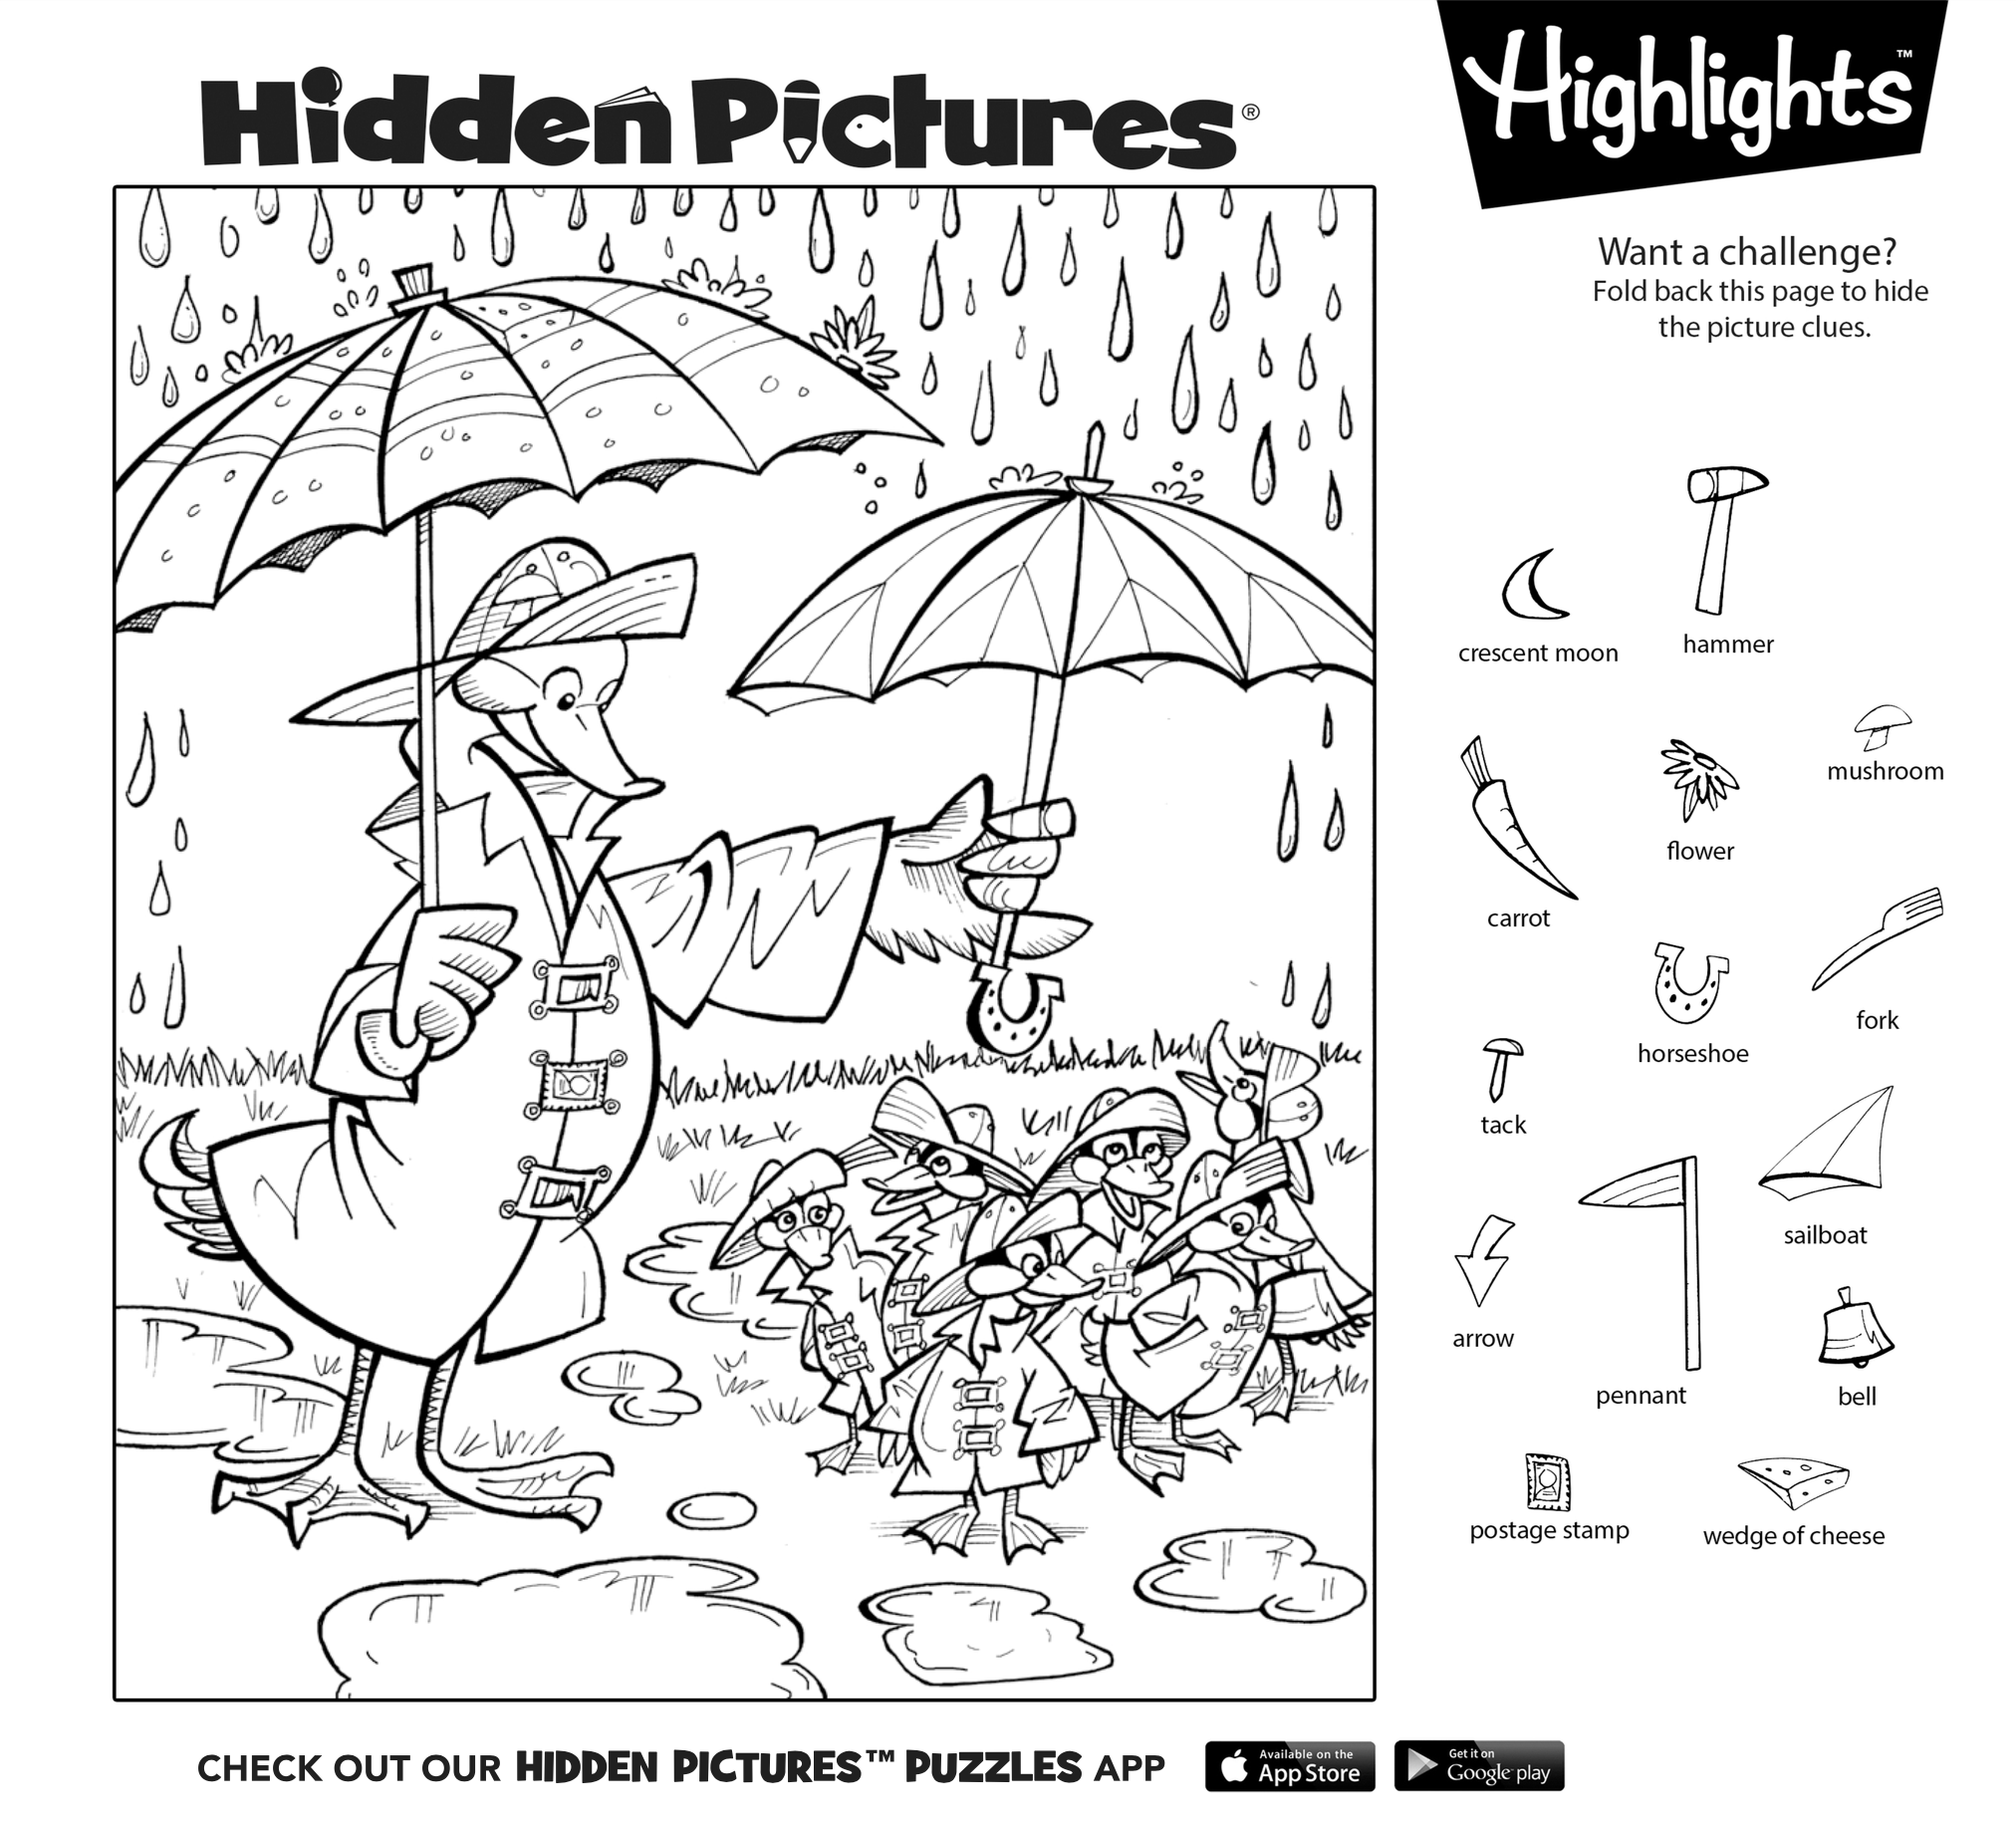 Try Solving This Hidden Pictures Puzzle Yourself Then Download The